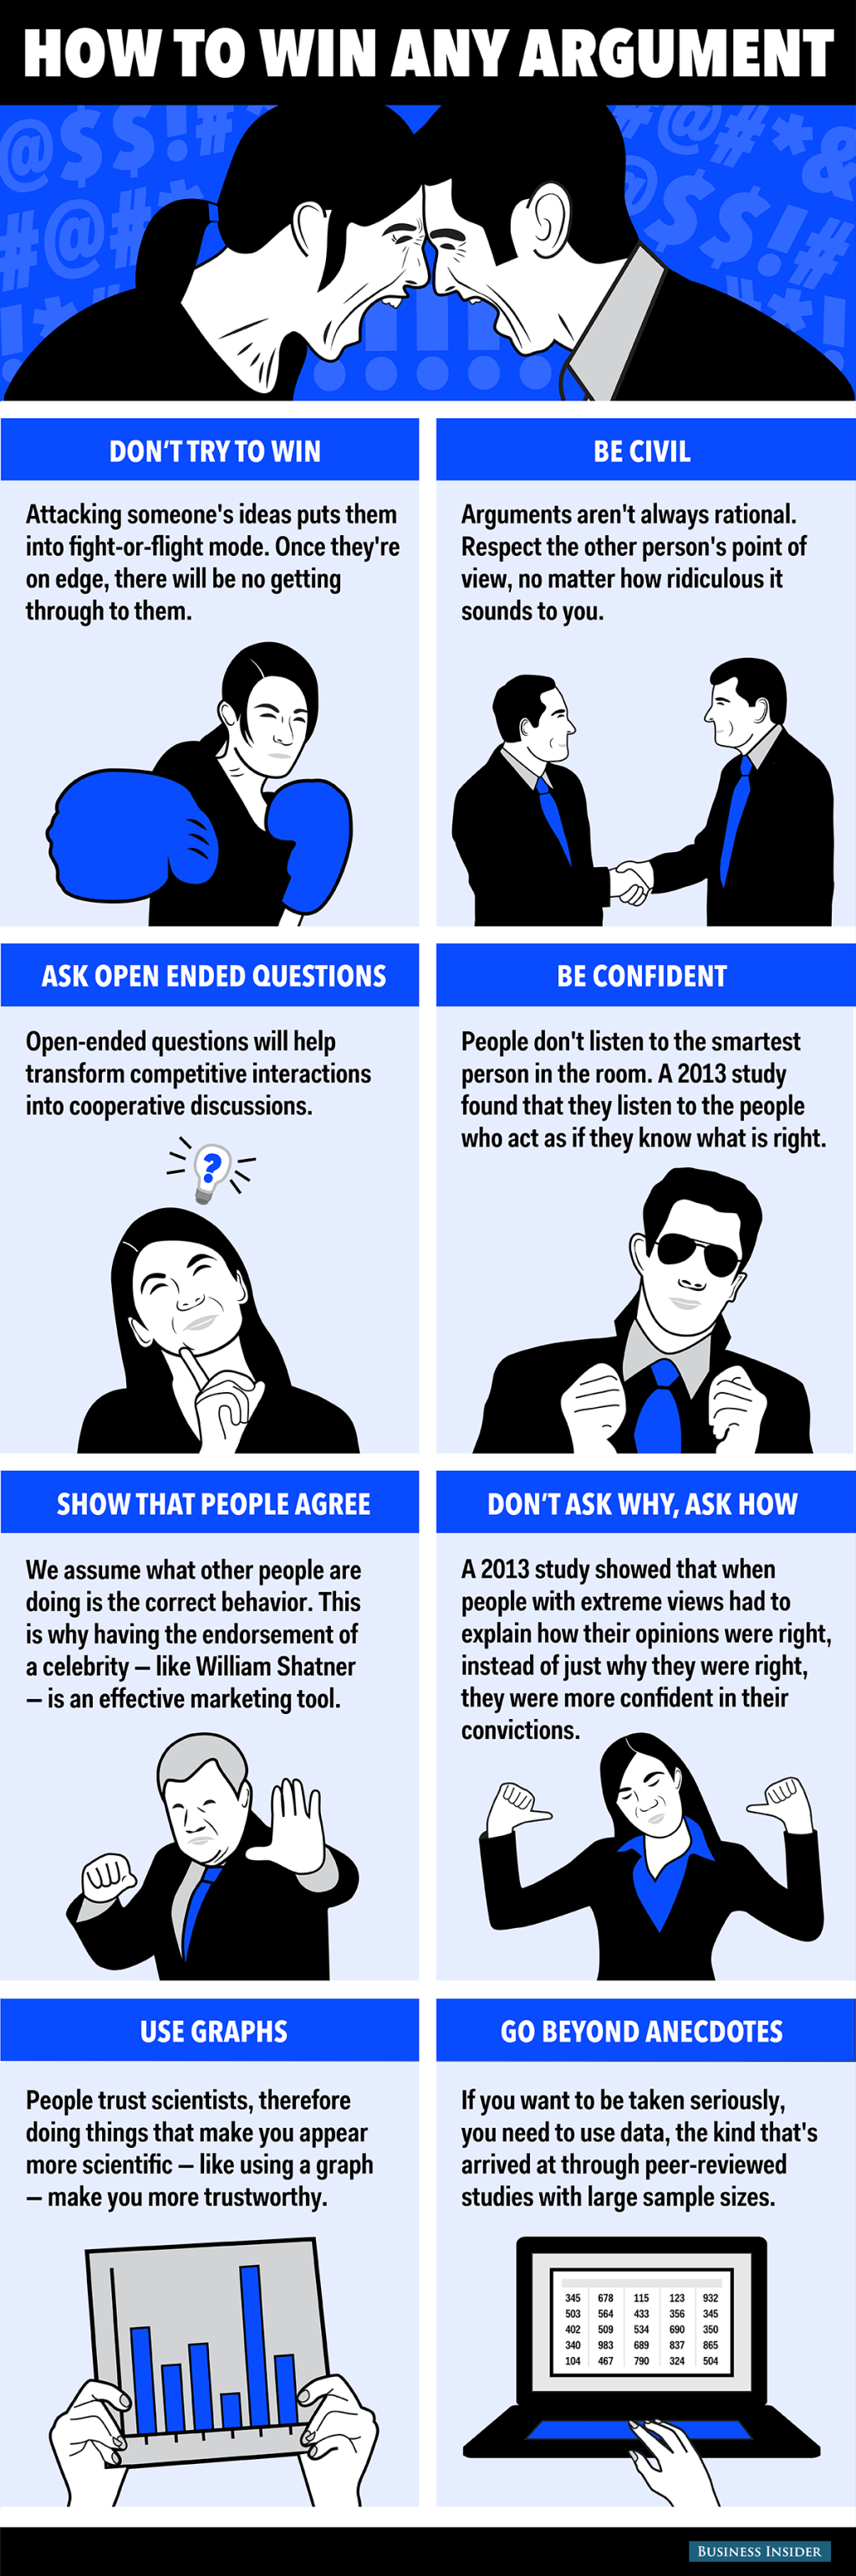 Infographic: How to win any argument